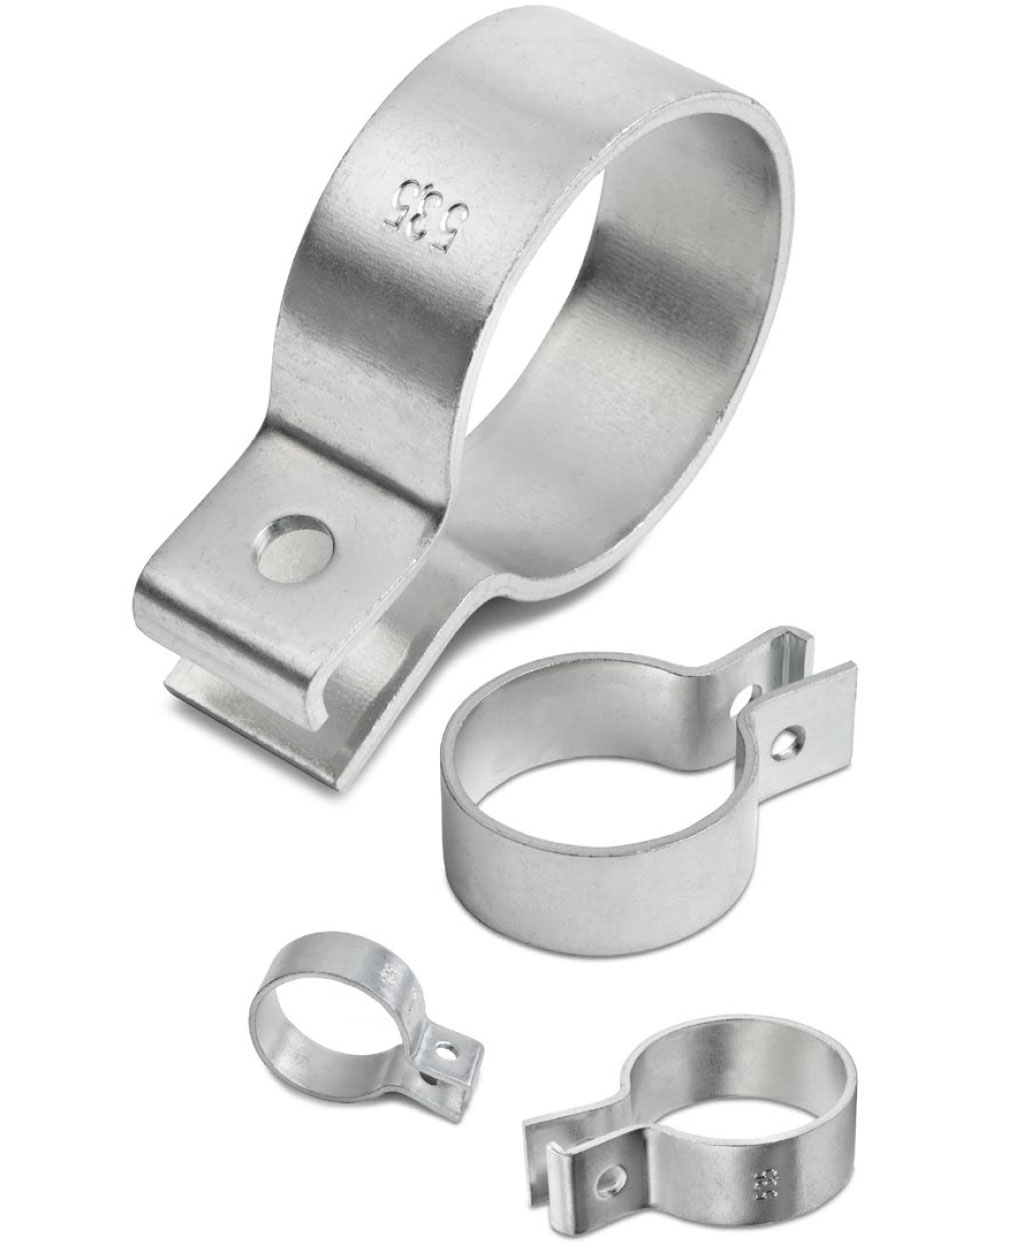 Heavy-duty Pipe Clamps